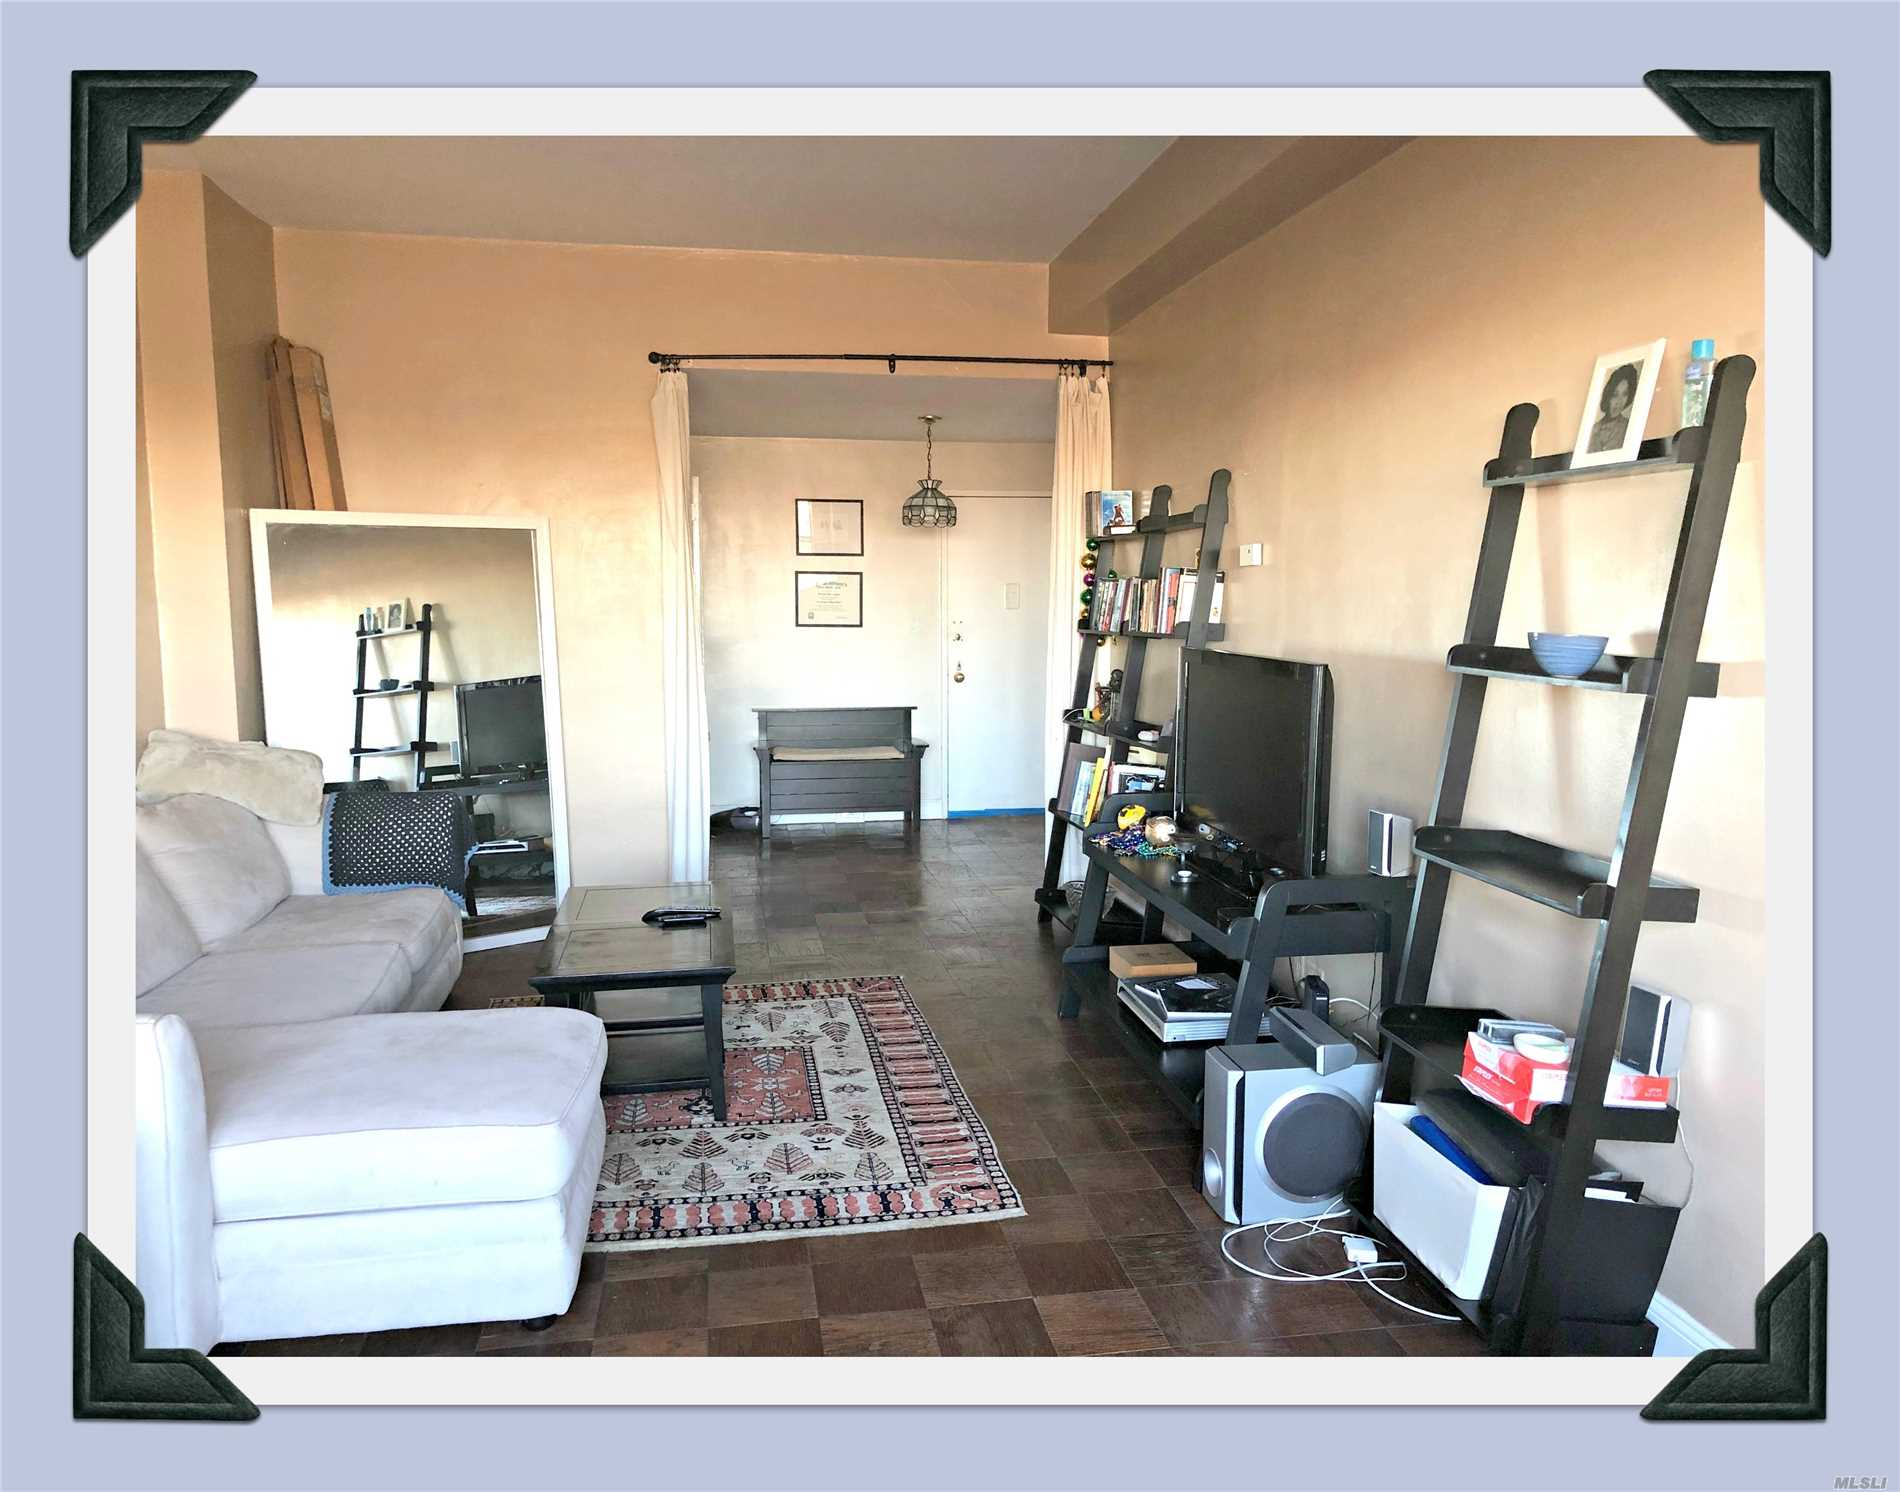 Come See This Penthouse Luxury Hi-Rise 1 Bedroom Apartment . 10' Ceilings. This Unit Has Beautiful Lake Views. Parquet Floors. G/E Included In Maintenance.24 Hr Doorman, In-Ground Swimming Pool & Cabana Makes You Feel Your On Vacation. Pets Are Welcome.